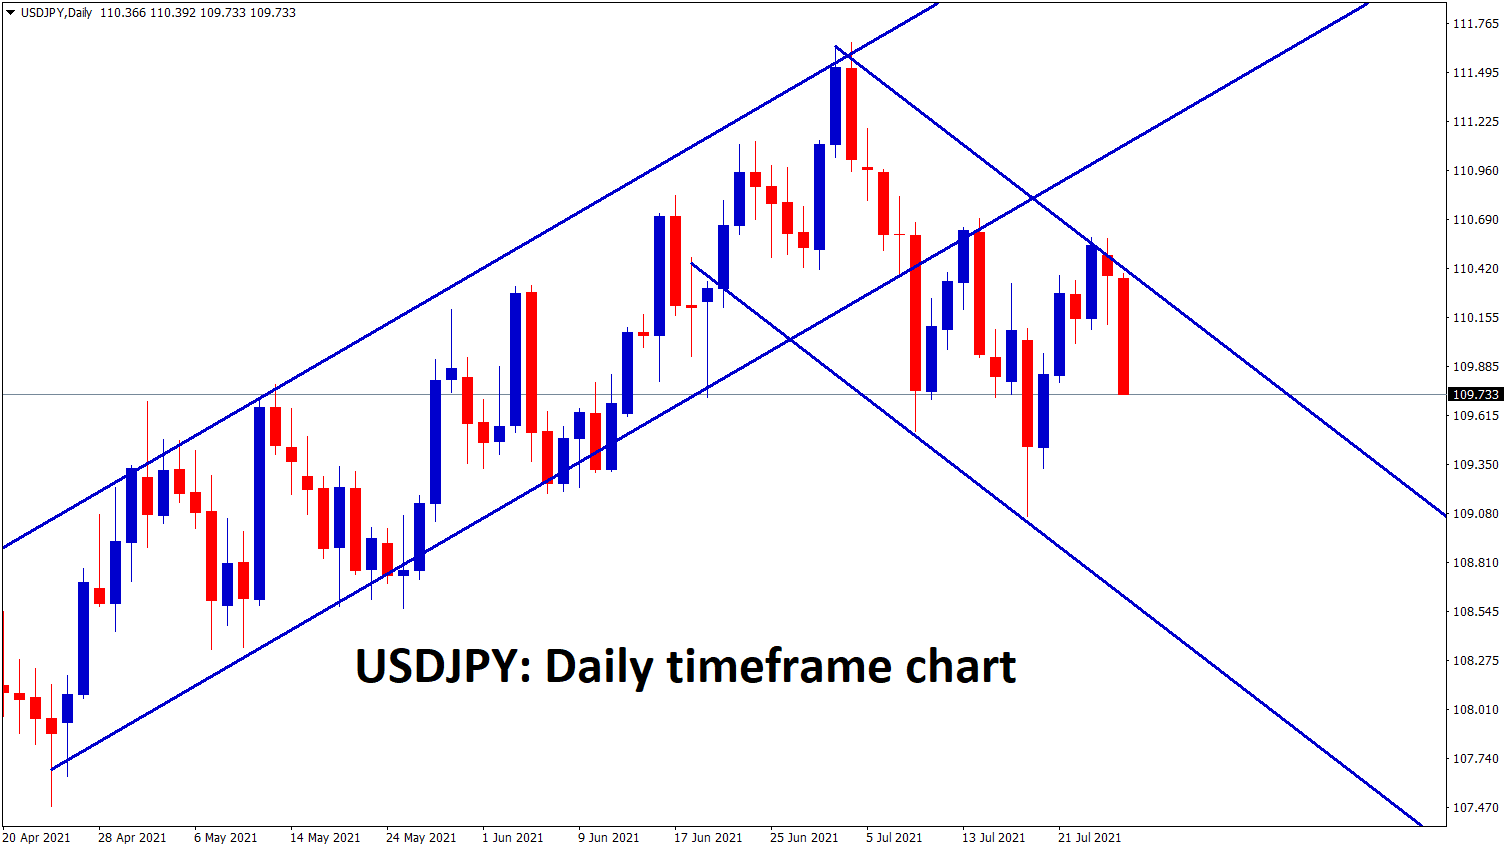 USDJPY is moving between the channel ranges for a long time